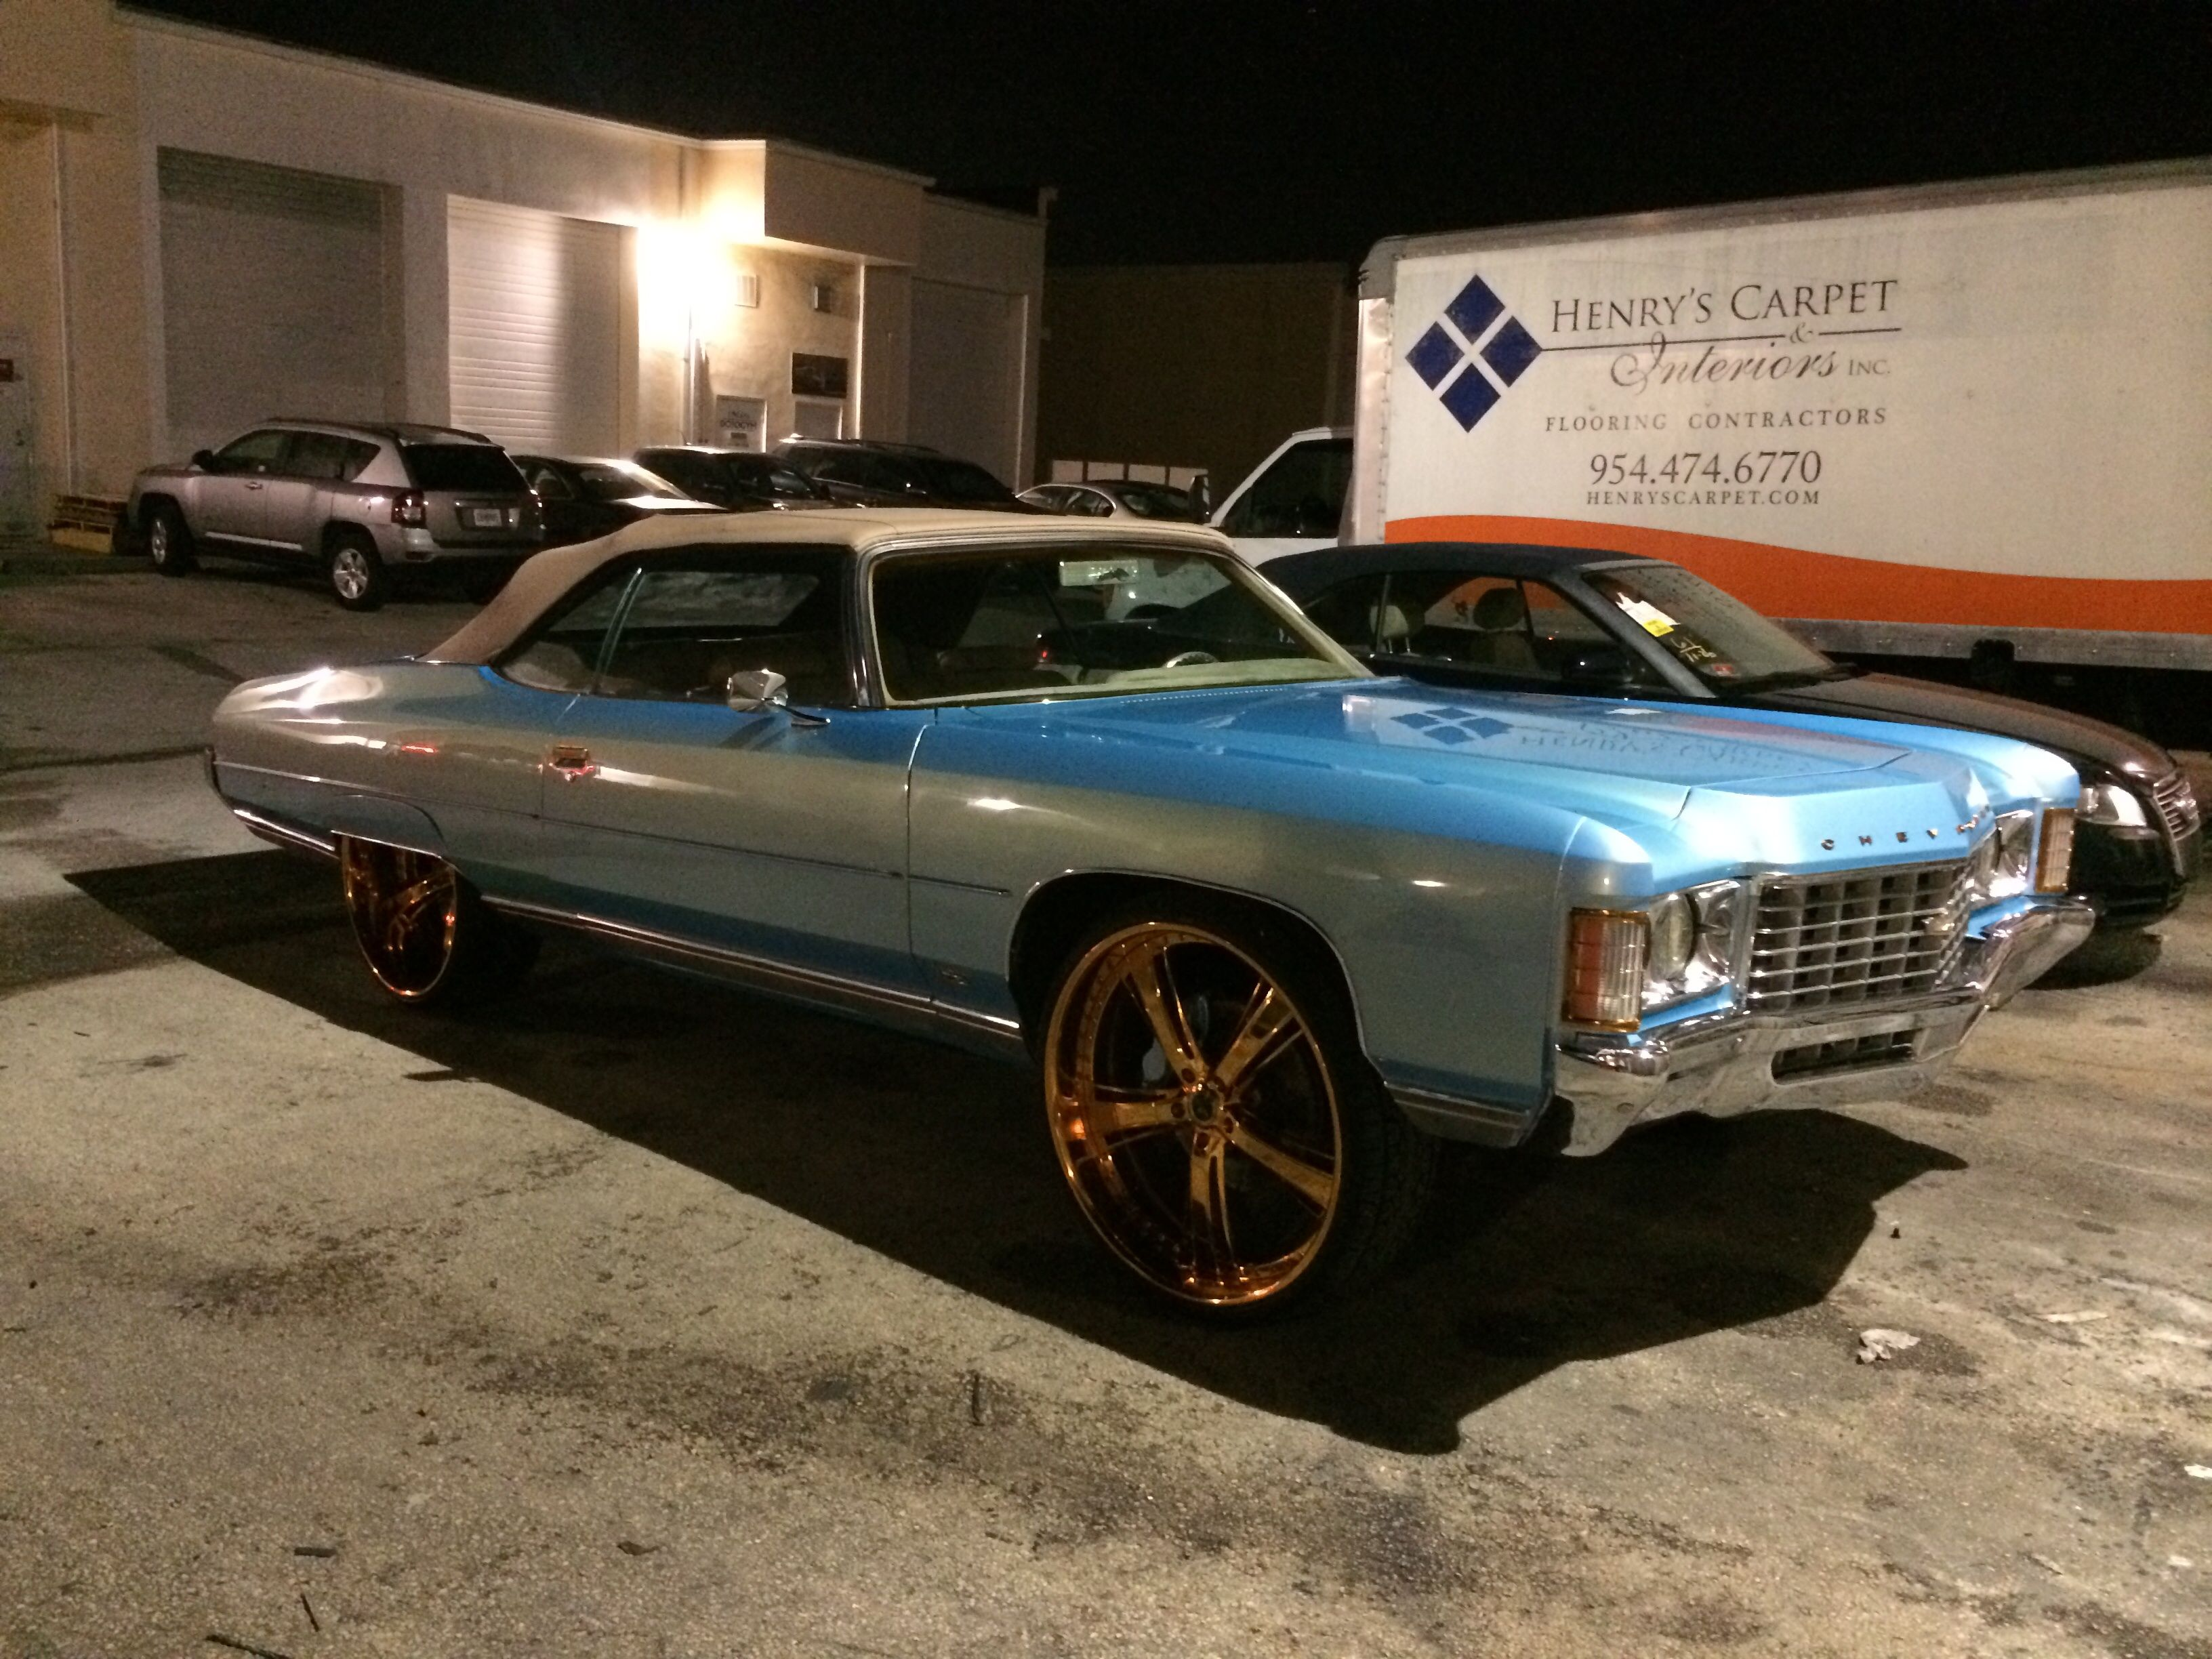 1971 Chevy Impala Convertible For Sale Stuff To Buy